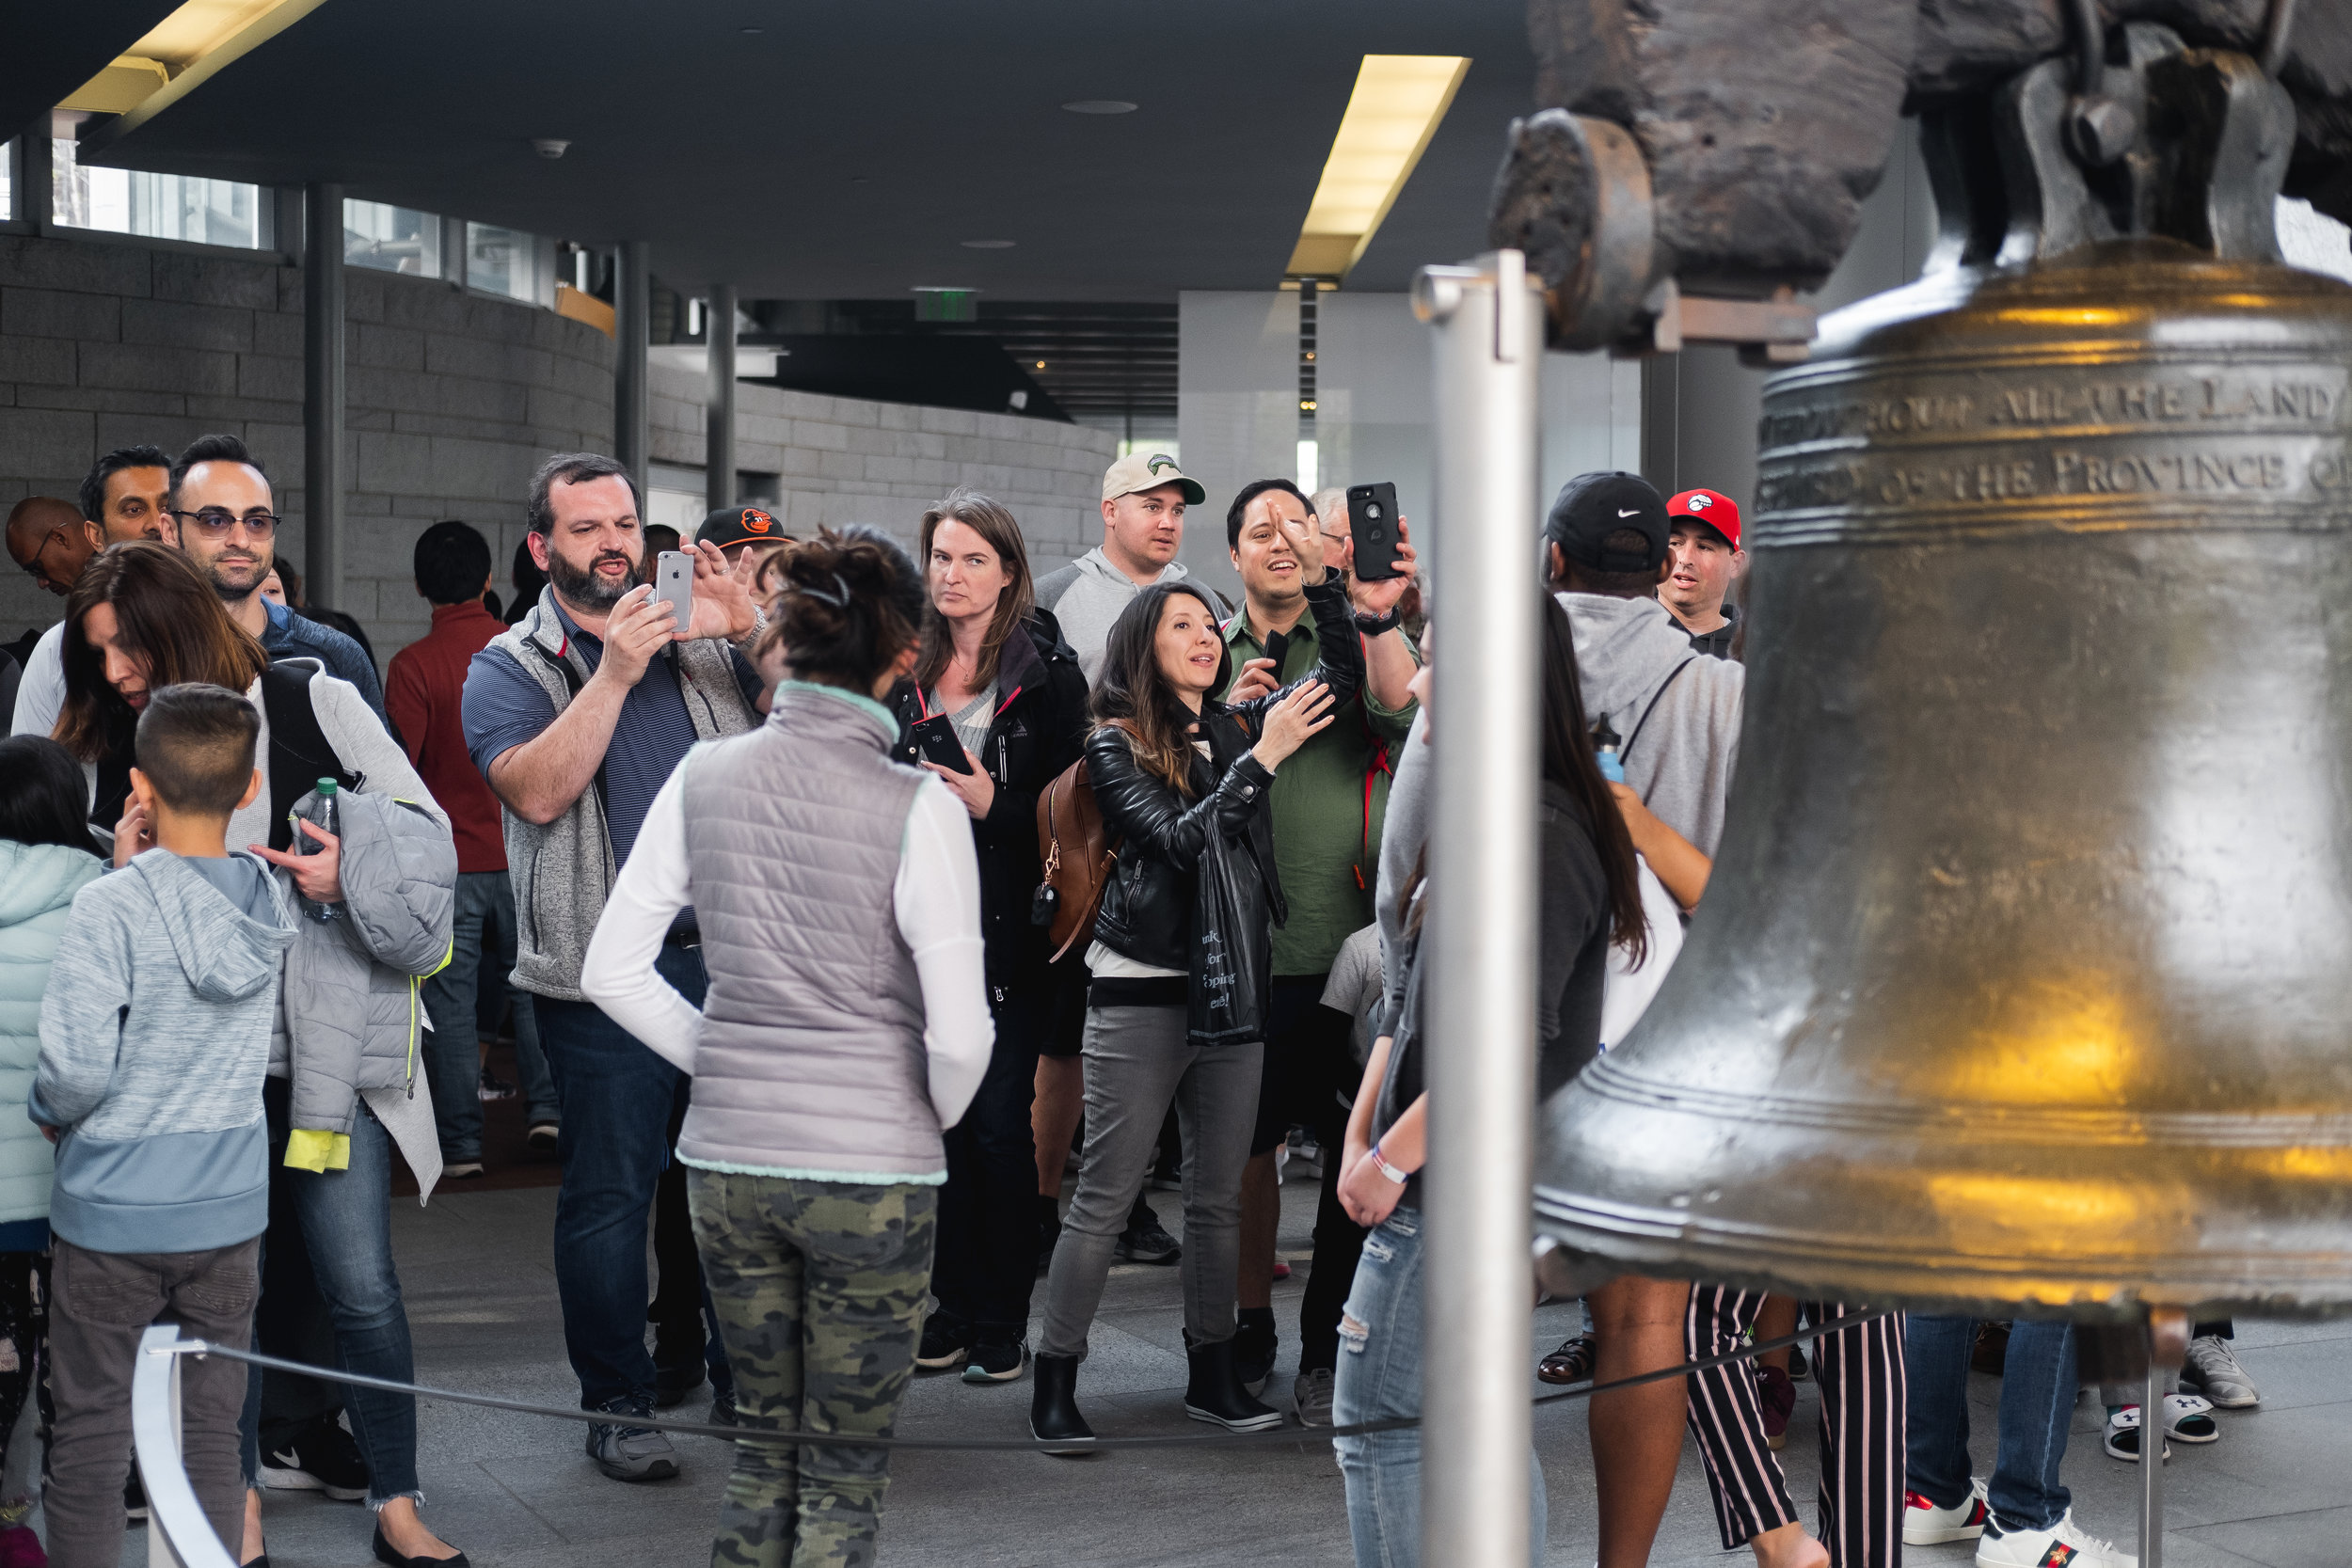 2019_LIBERTY BELL_THE PHILLY CHECKLIST_FINAL-11.jpg